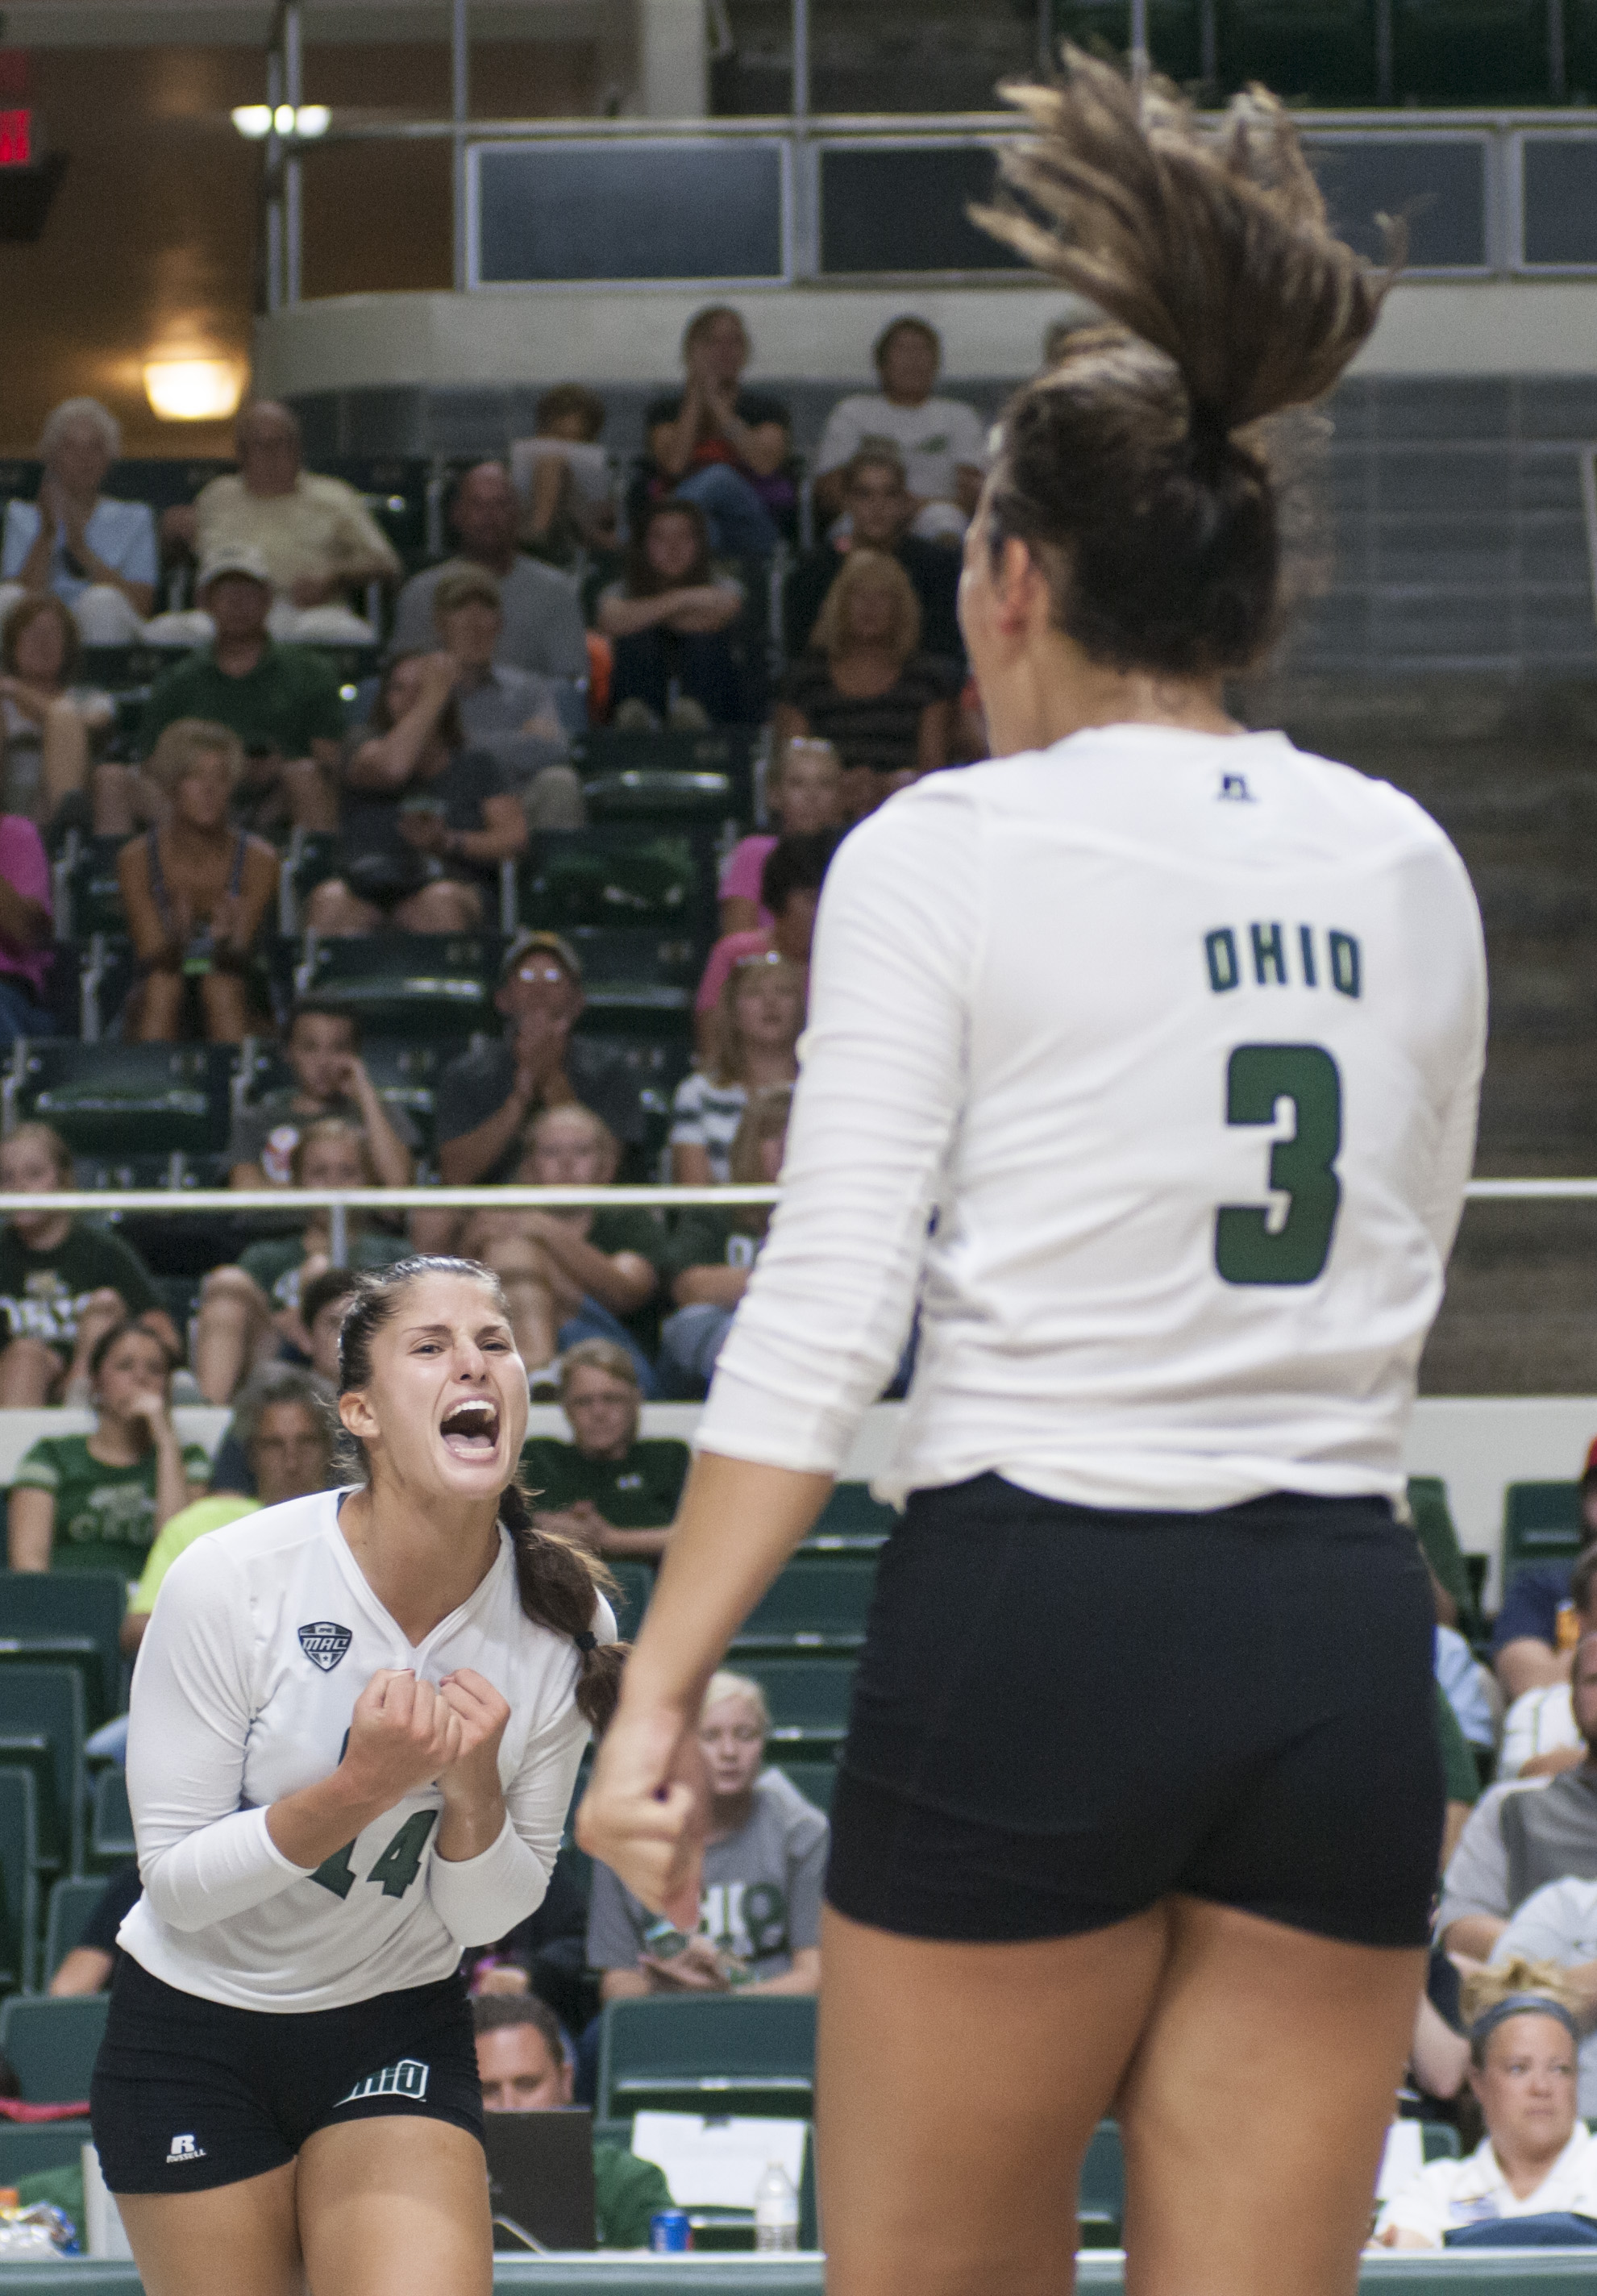 Ohio University's Jaime Kosiorek and Abbey Gilleland celebrate a point made against University of Michigan on Saturday Sept. 5, 2015 in the Convocation Center in Athens, Ohio.